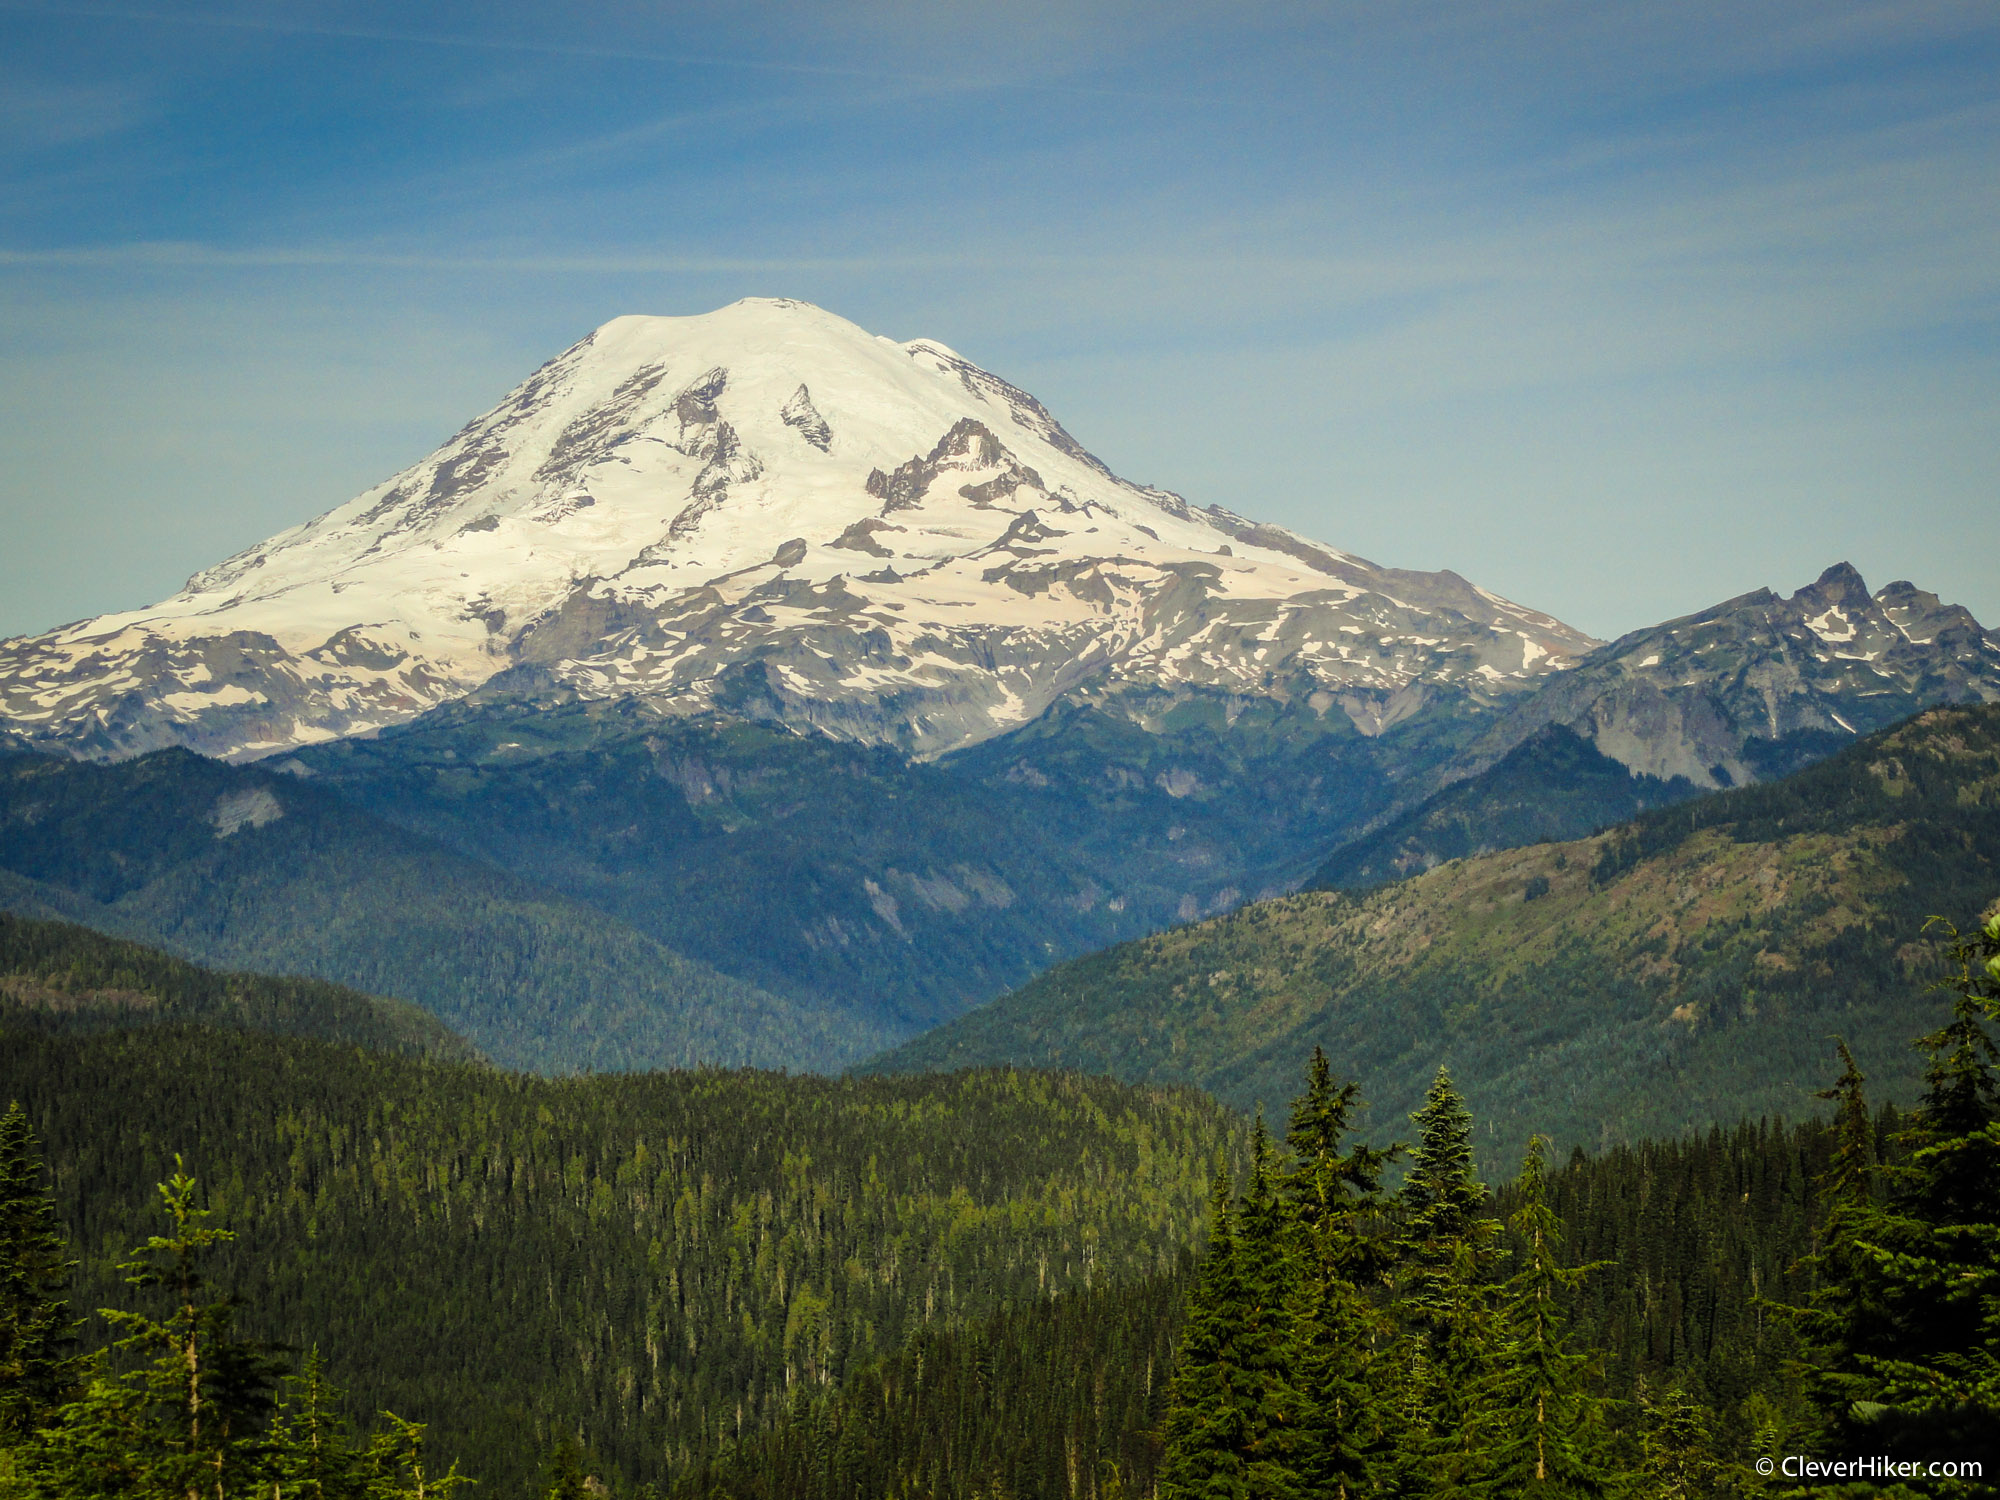 Mt. Rainier from the PCT